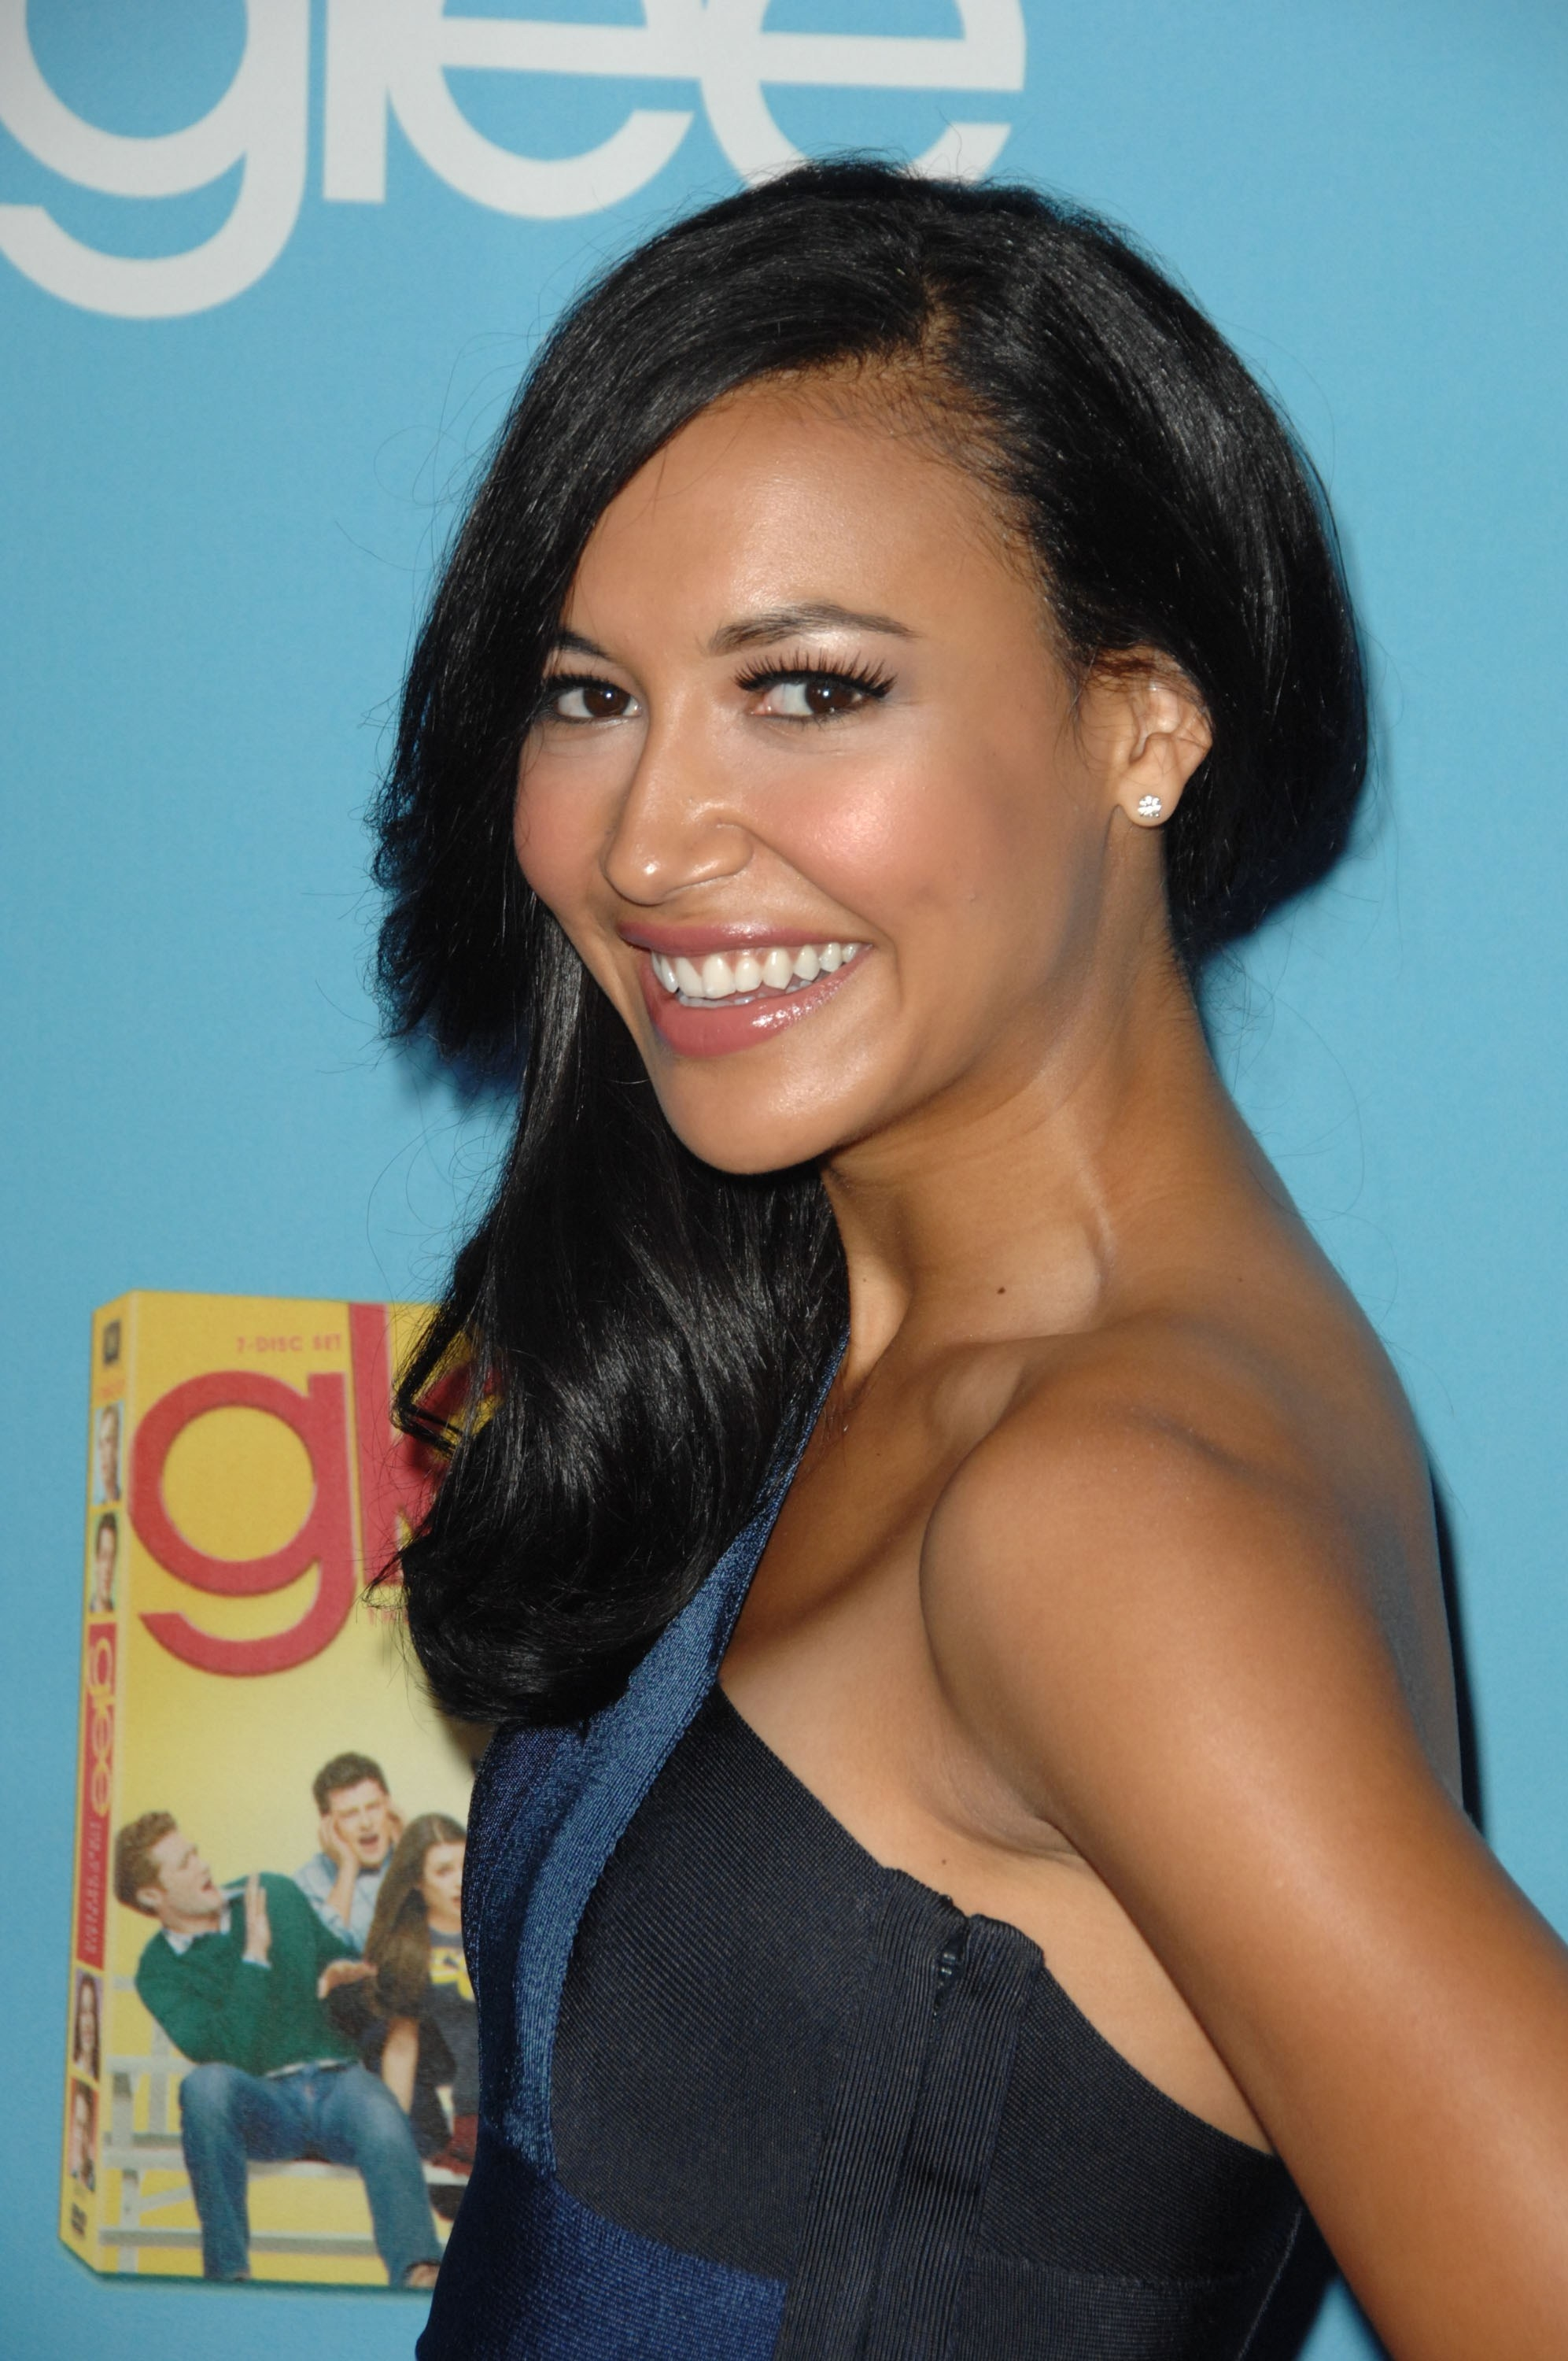 Naya Rivera at the premiere of Glee's second season in 2010